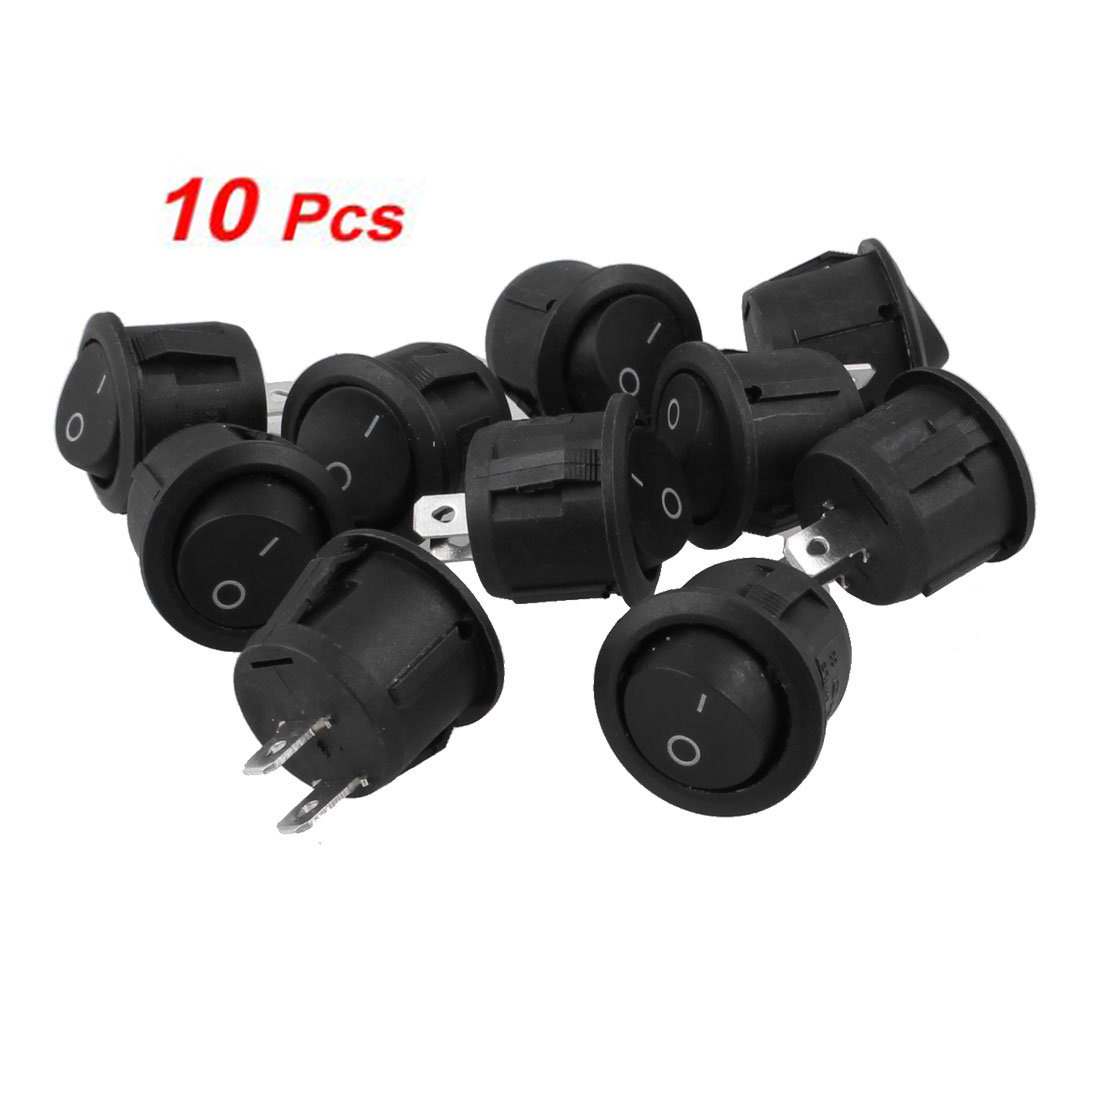 Promotion! 10Pcs AC 6A 10A 250V On Off Snap in SPST Round Boat Rocker Switch Black 4pcs lot 20mm 3pin spst on off g116 round boat rocker switch 6a 250v 10a 125v car dash dashboard truck rv atv home